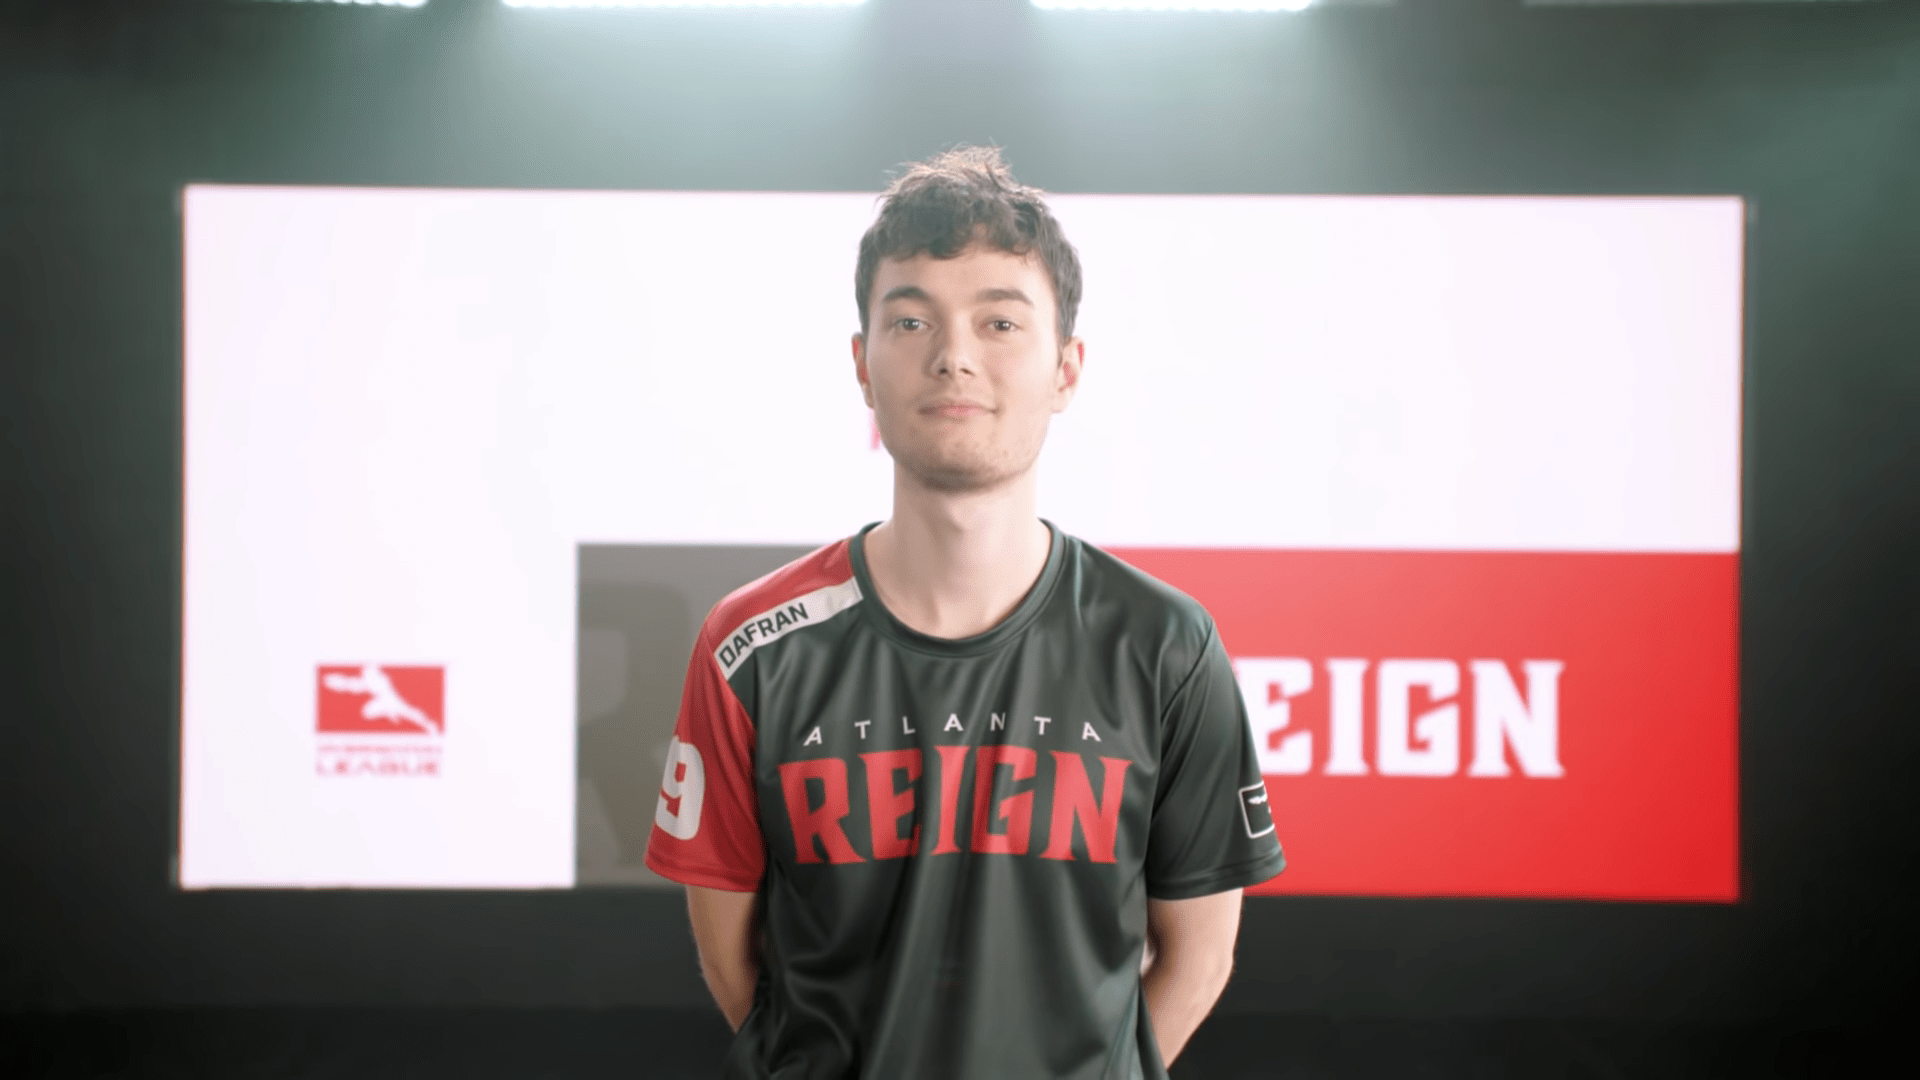 Former Overwatch League Player And Popular Twitch Streamer, Dafran, Banned for 30 Days